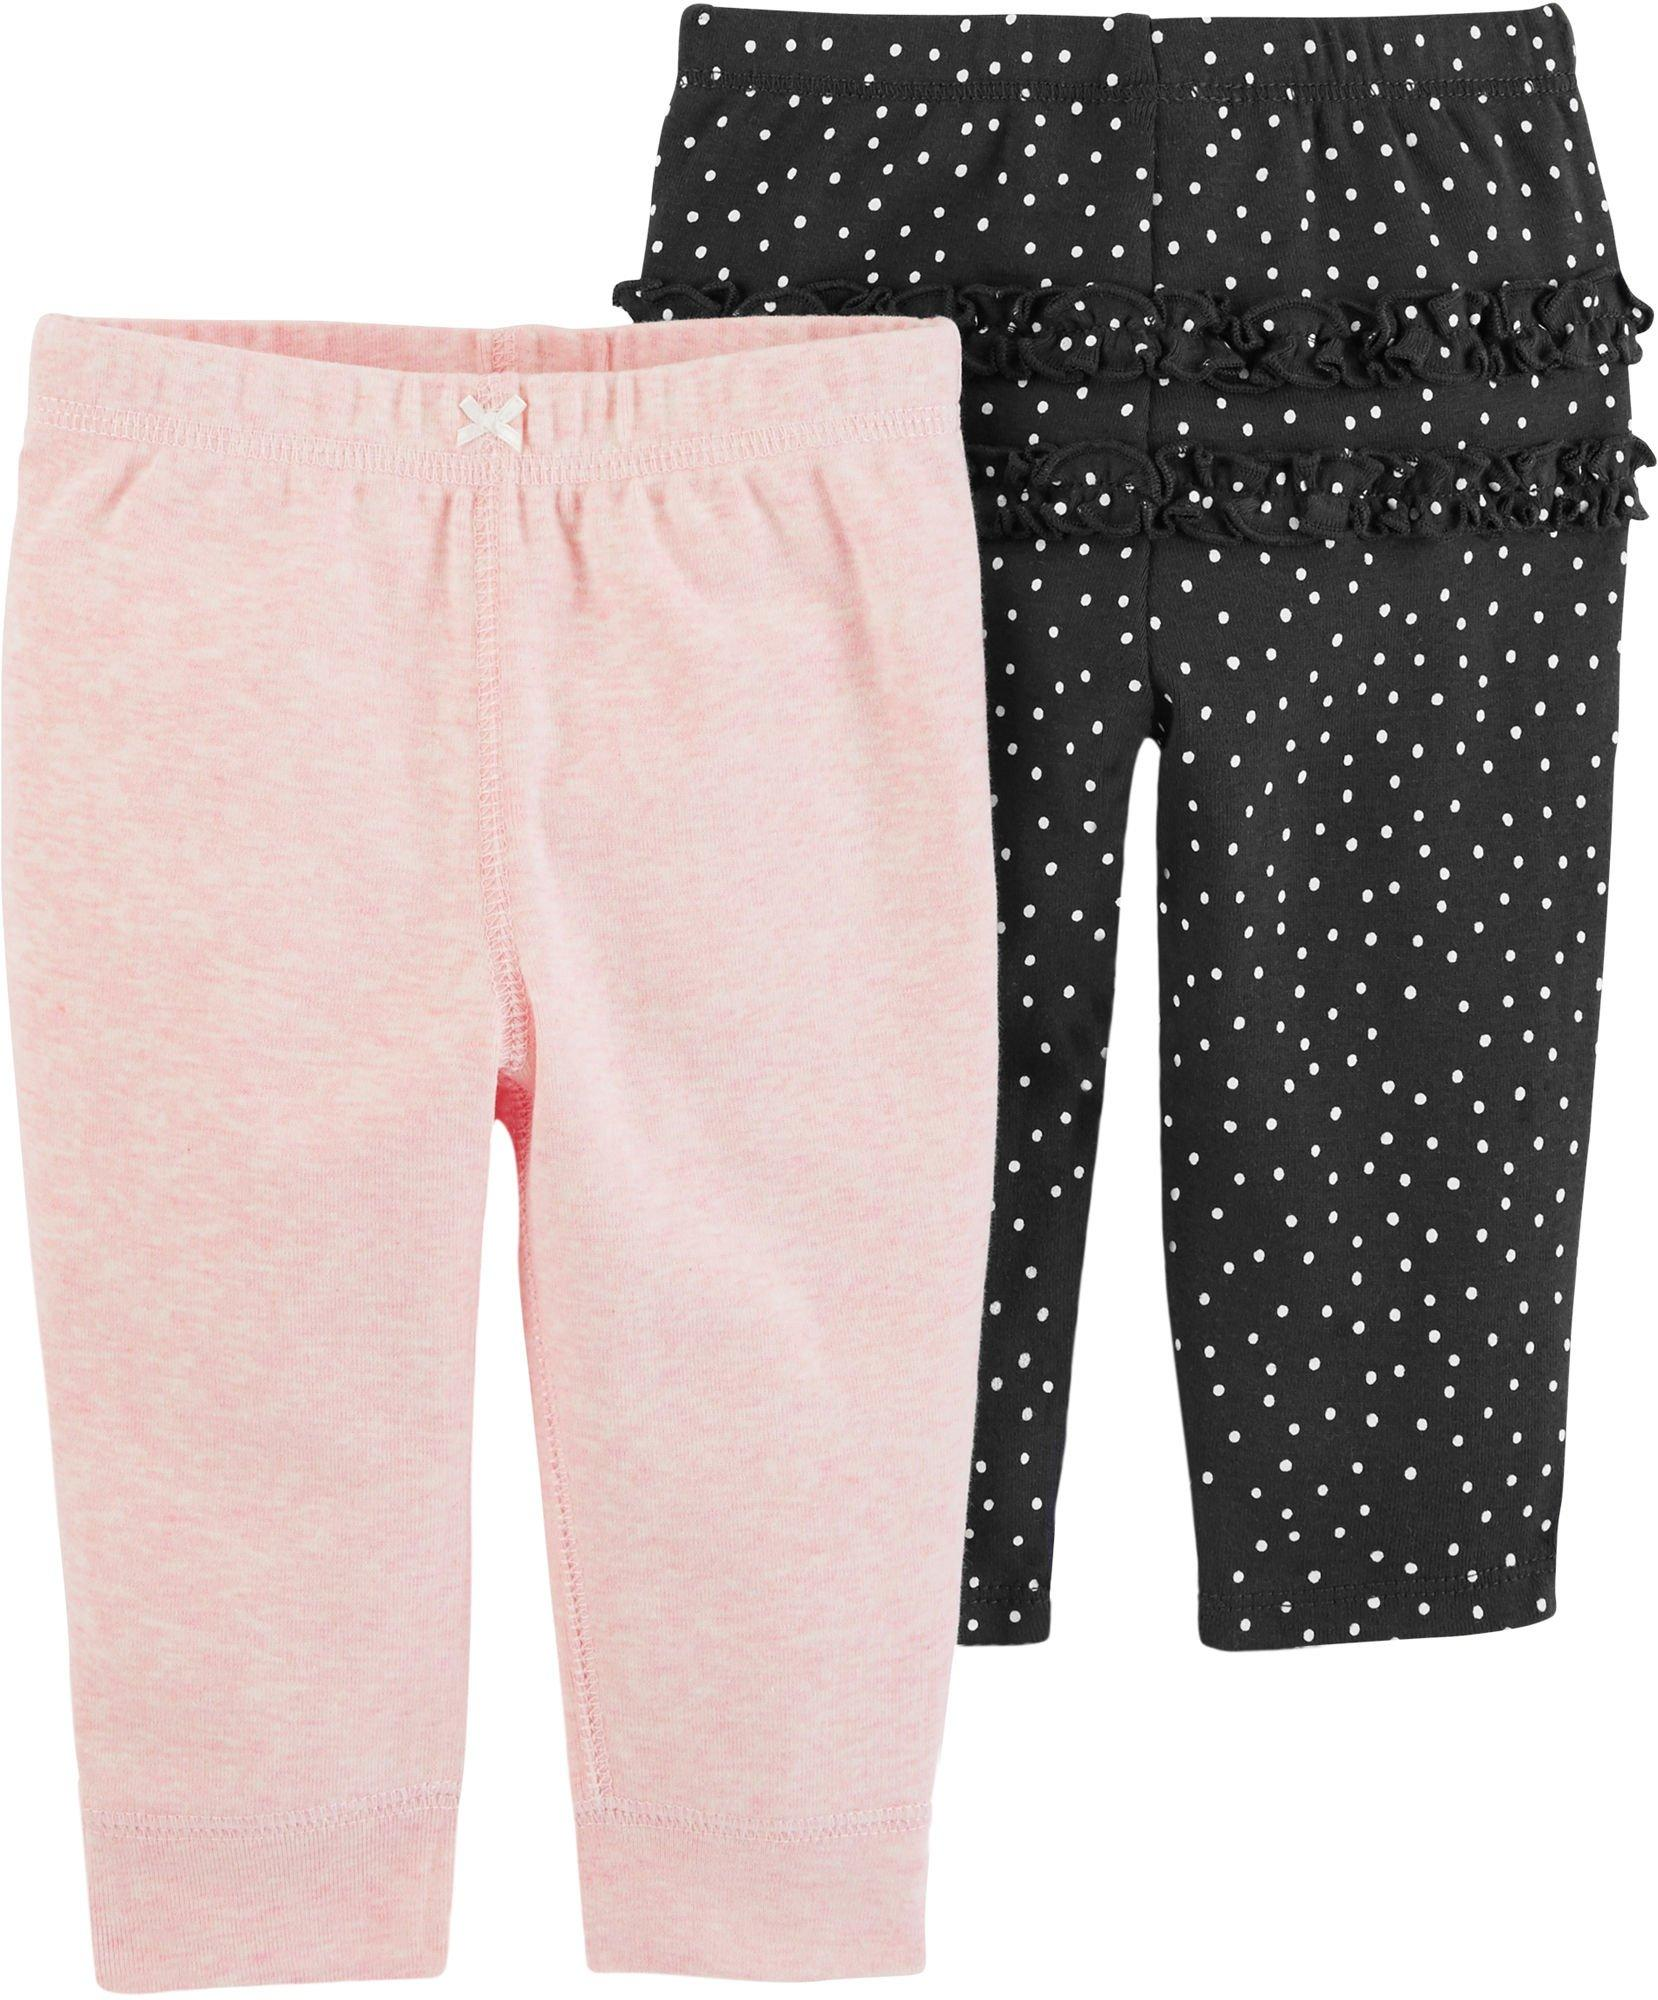 3 Months, White 3M-24M Carters Baby Girls French Terry Capri-length Pants